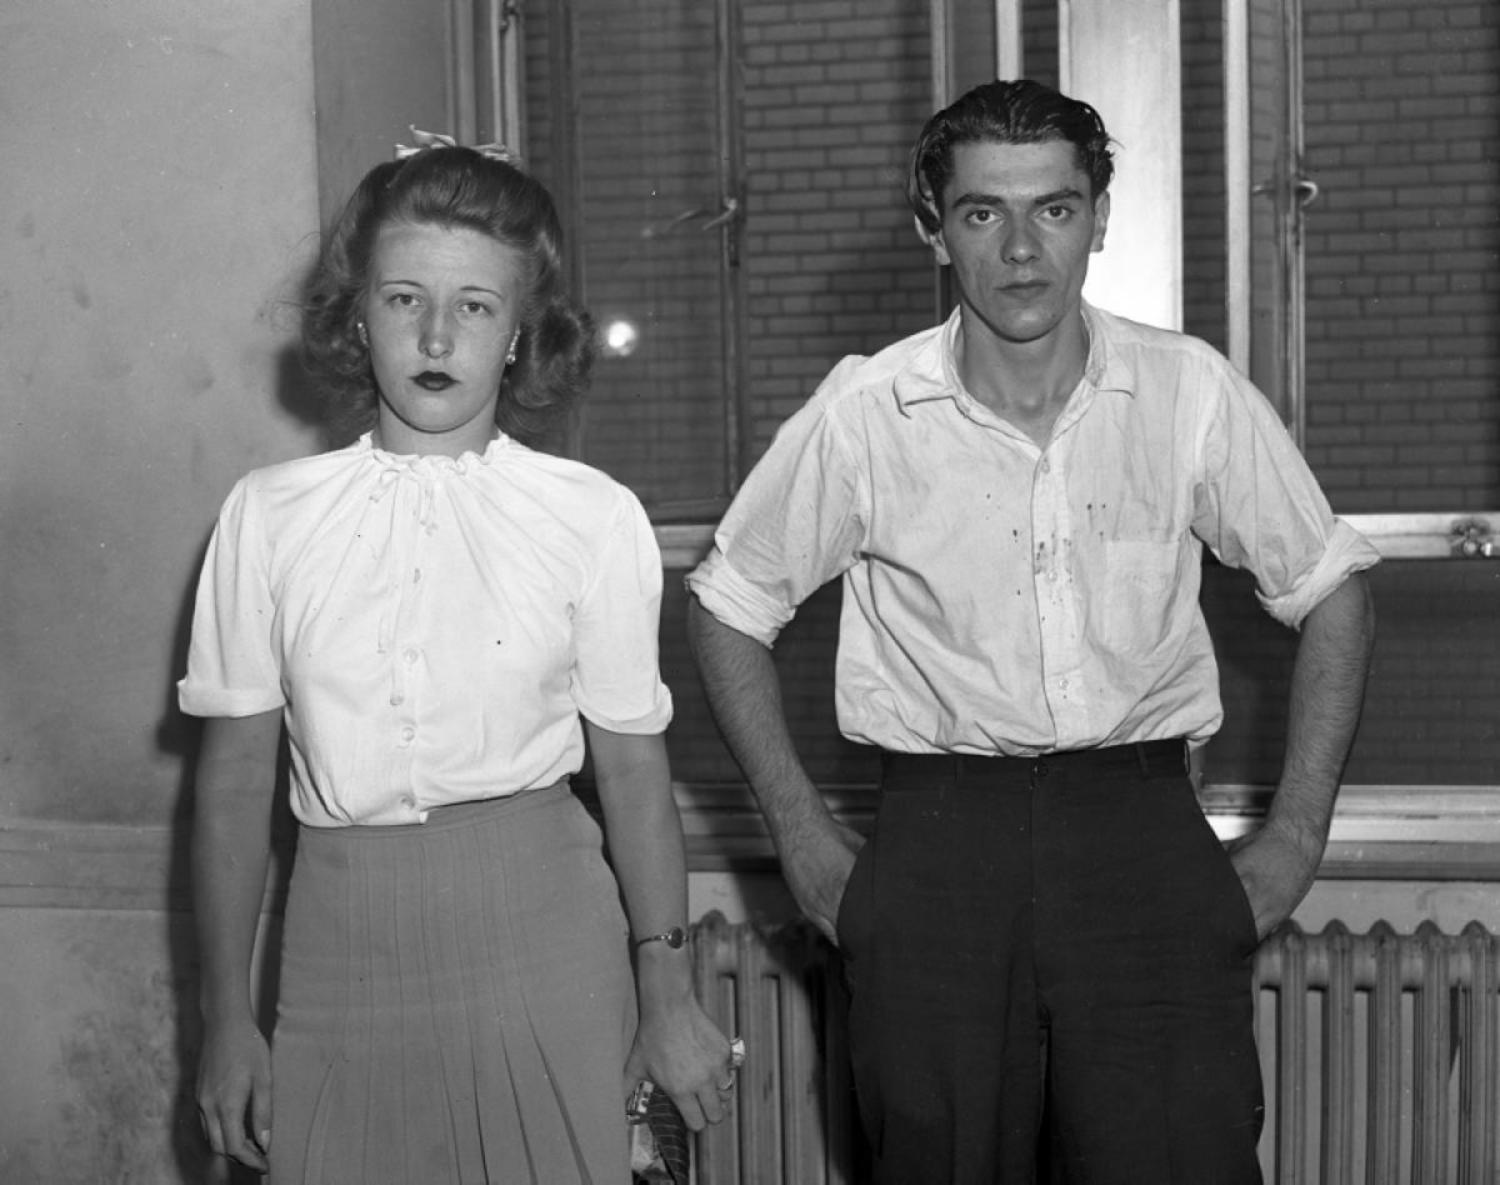 Mob Moll, 1944: She stands by her man! 19-year-old Virgina Ornmark looks unfazed as she and beau Fred Schmidt, 24, stare blankly at the camera after being arraigned for the murder of a lingerie merchant in 1944.